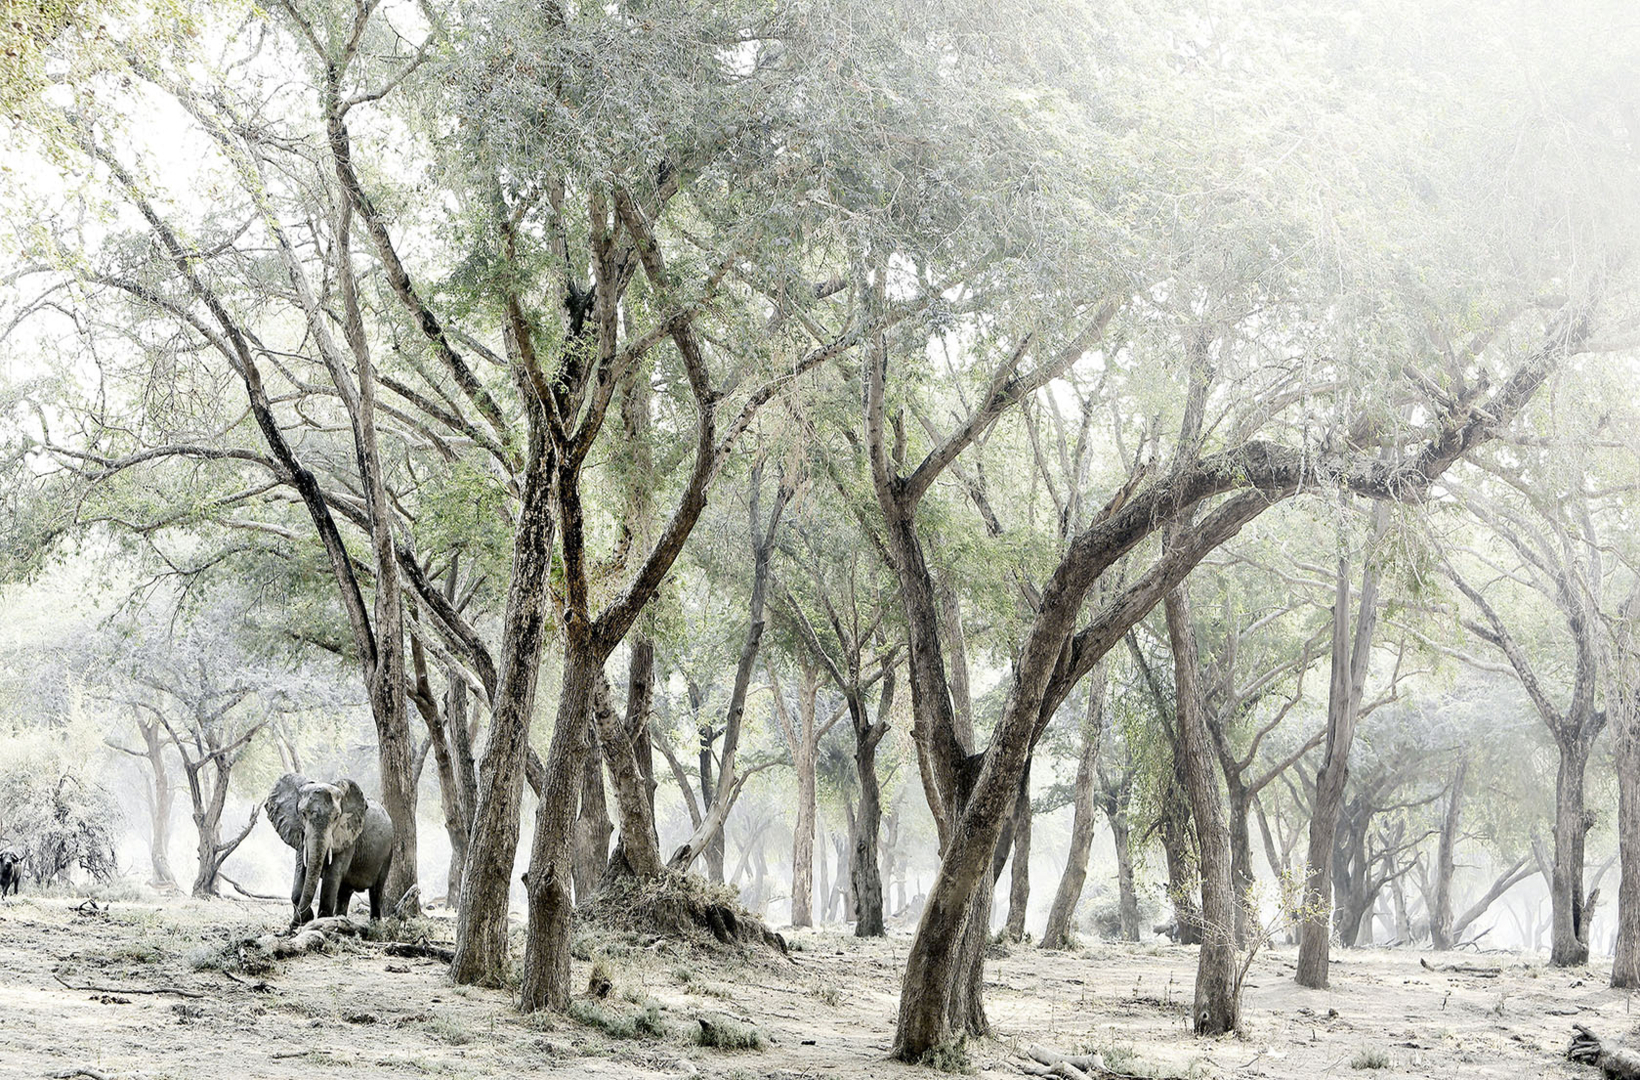 A lone African elephant approaches through a haze of midday heat walking through the forest at Mana Pools National Park in Zimbabwe